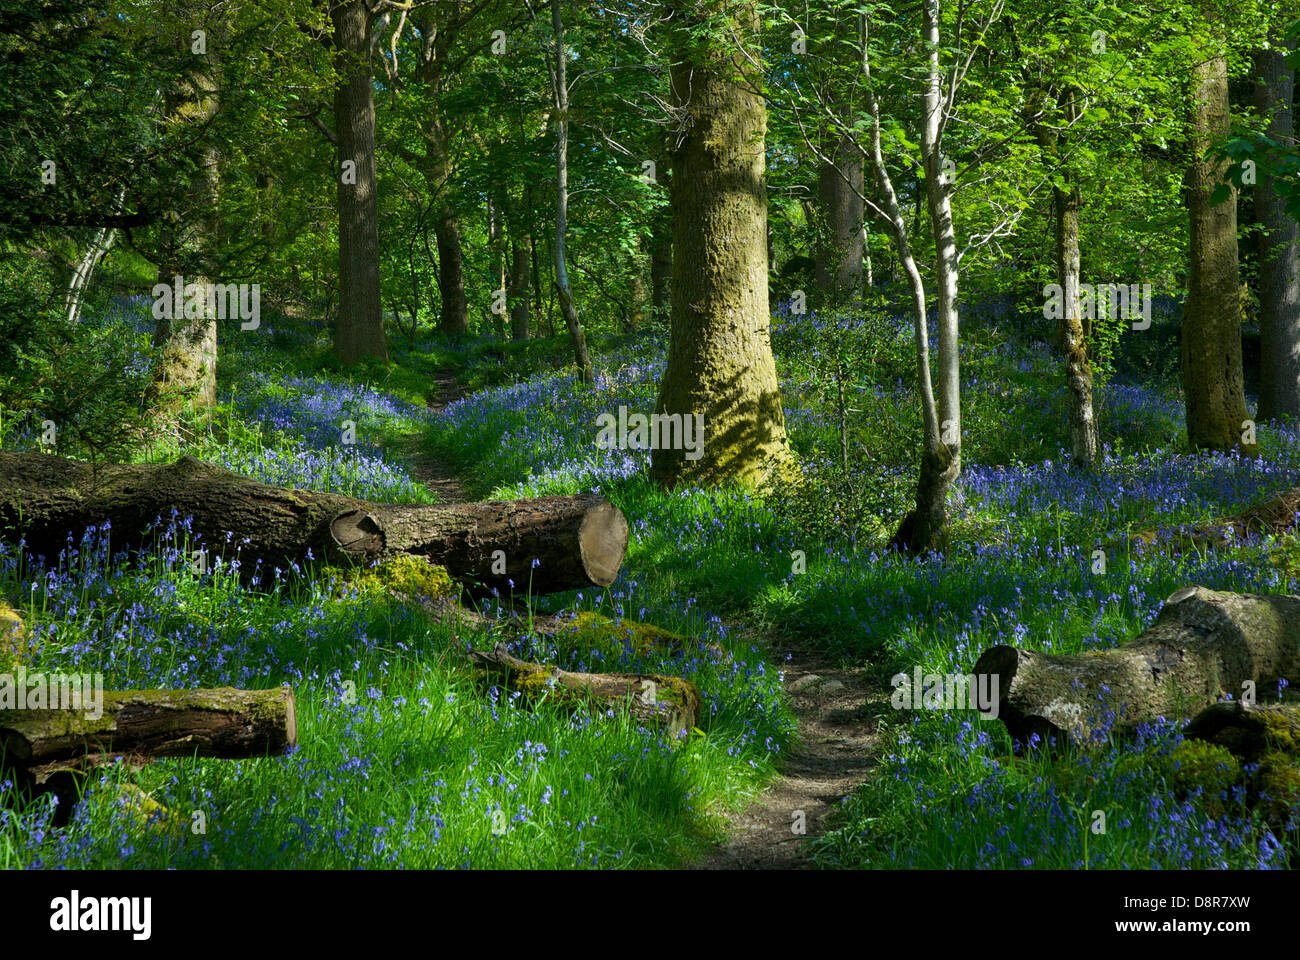 barkbooth-lot-a-woodland-nature-reserve-managed-by-cumbria-wildlife-D8R7XW.jpg